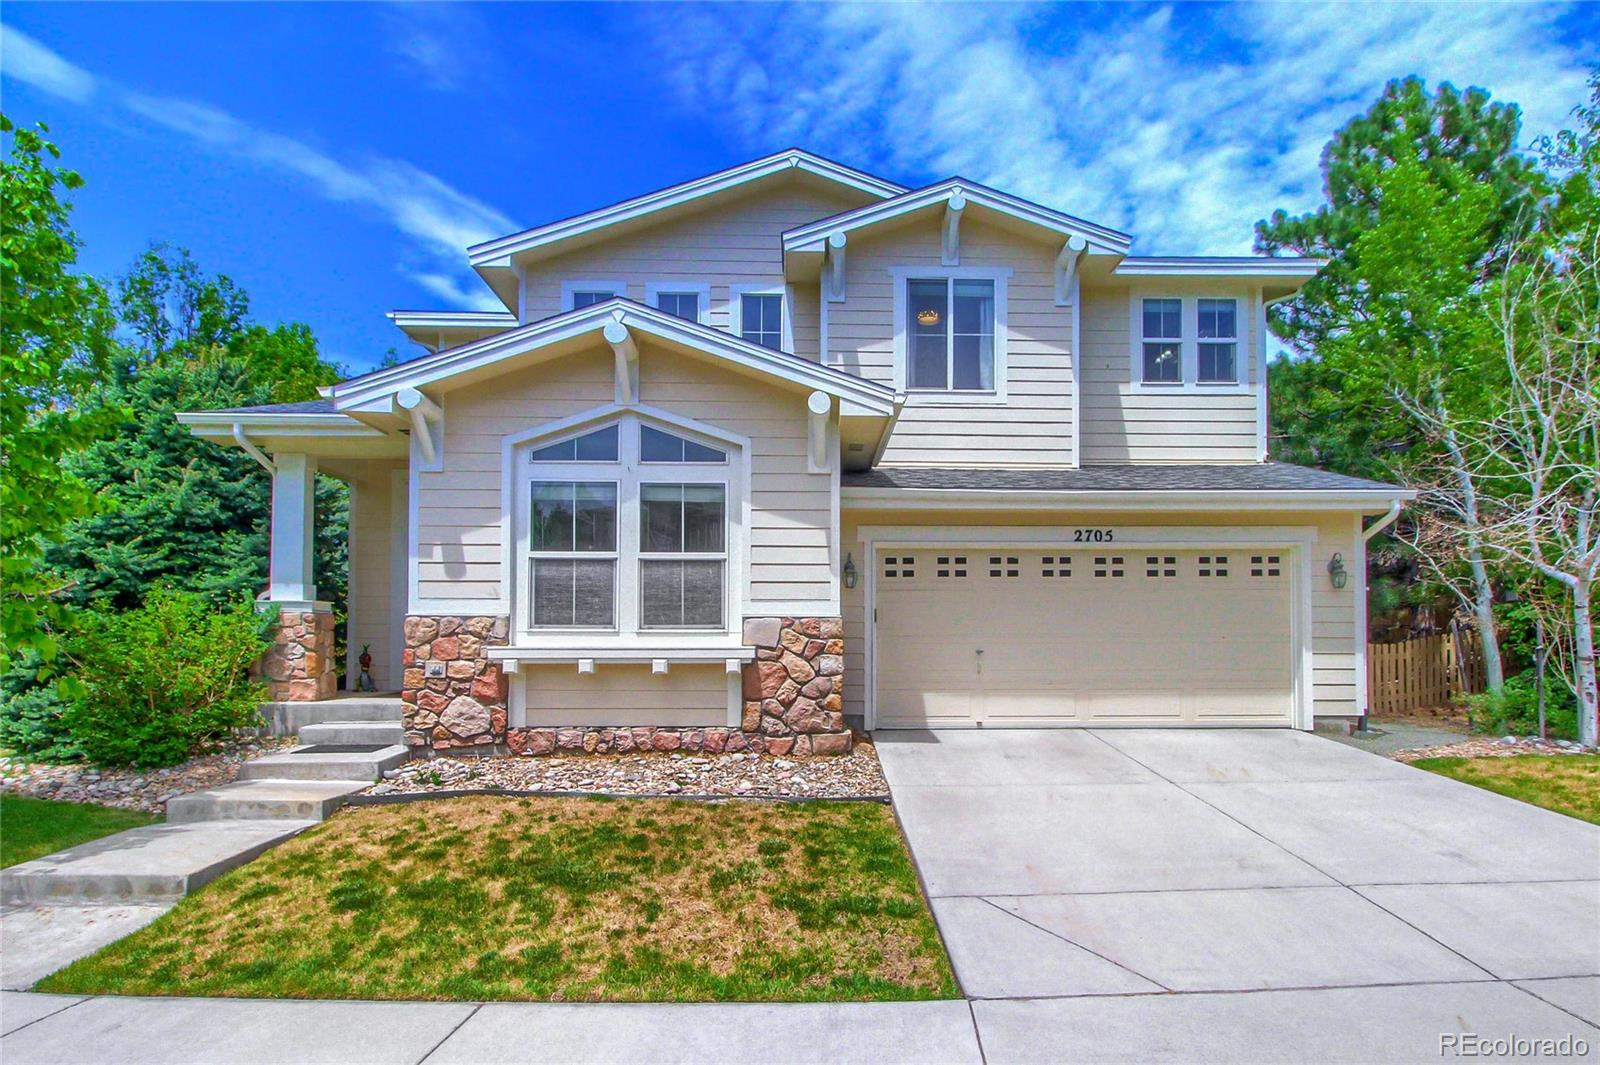 MLS# 9905484 - 1 - 2705 Middlebury Drive, Highlands Ranch, CO 80126